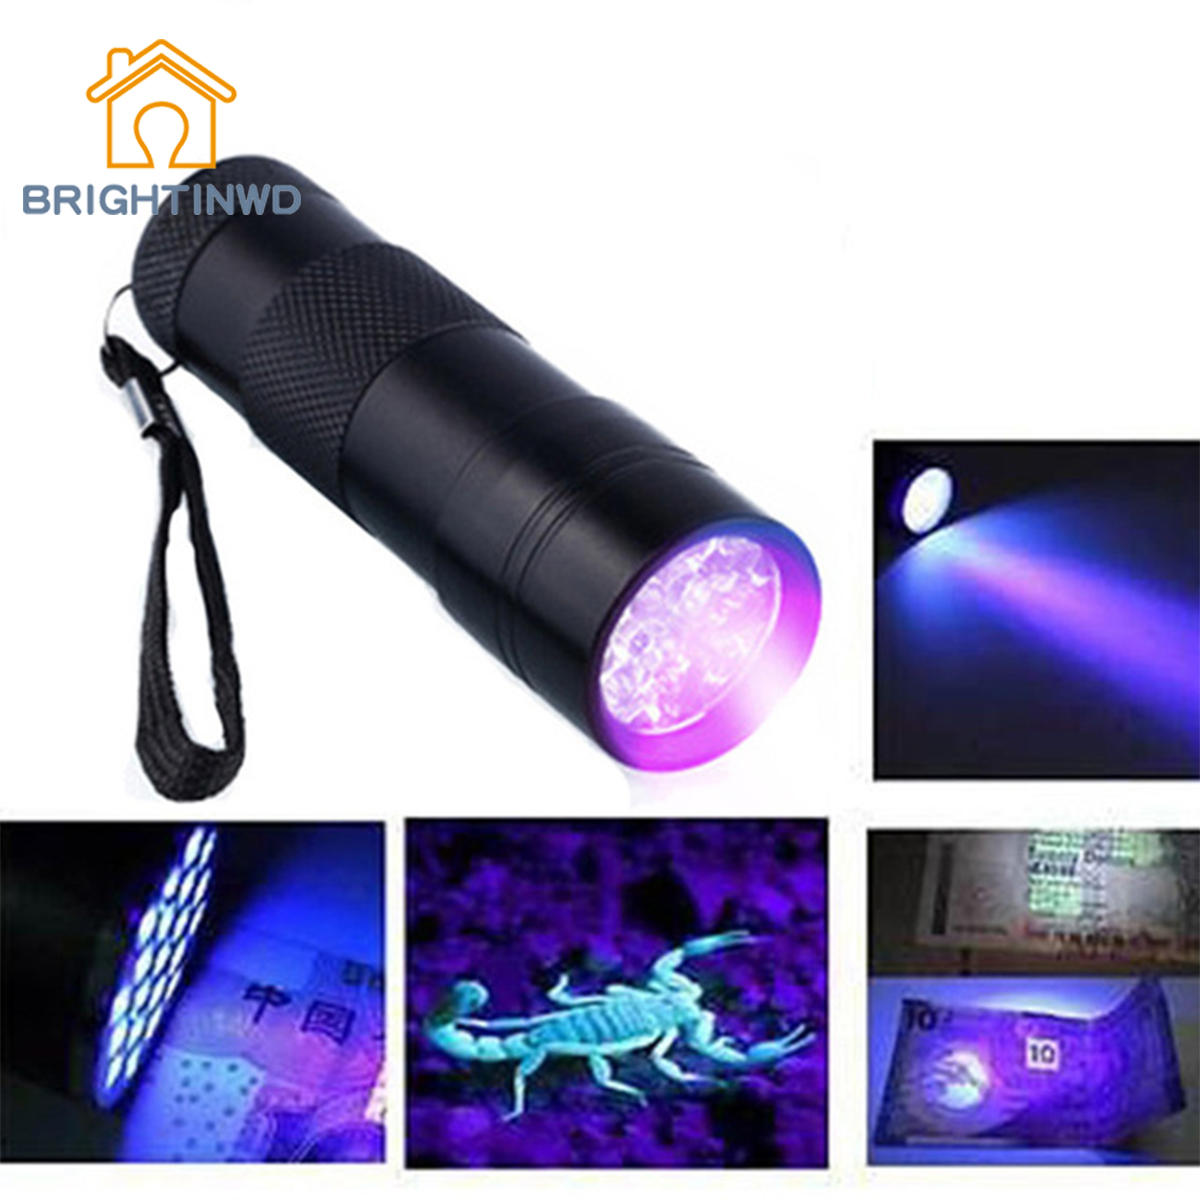 BRIGHTINWD Mini Aluminum Portable UV Flashlight Violet Light 9 LED UV Torch Light Lamp Flashlight Aluminum Alloy